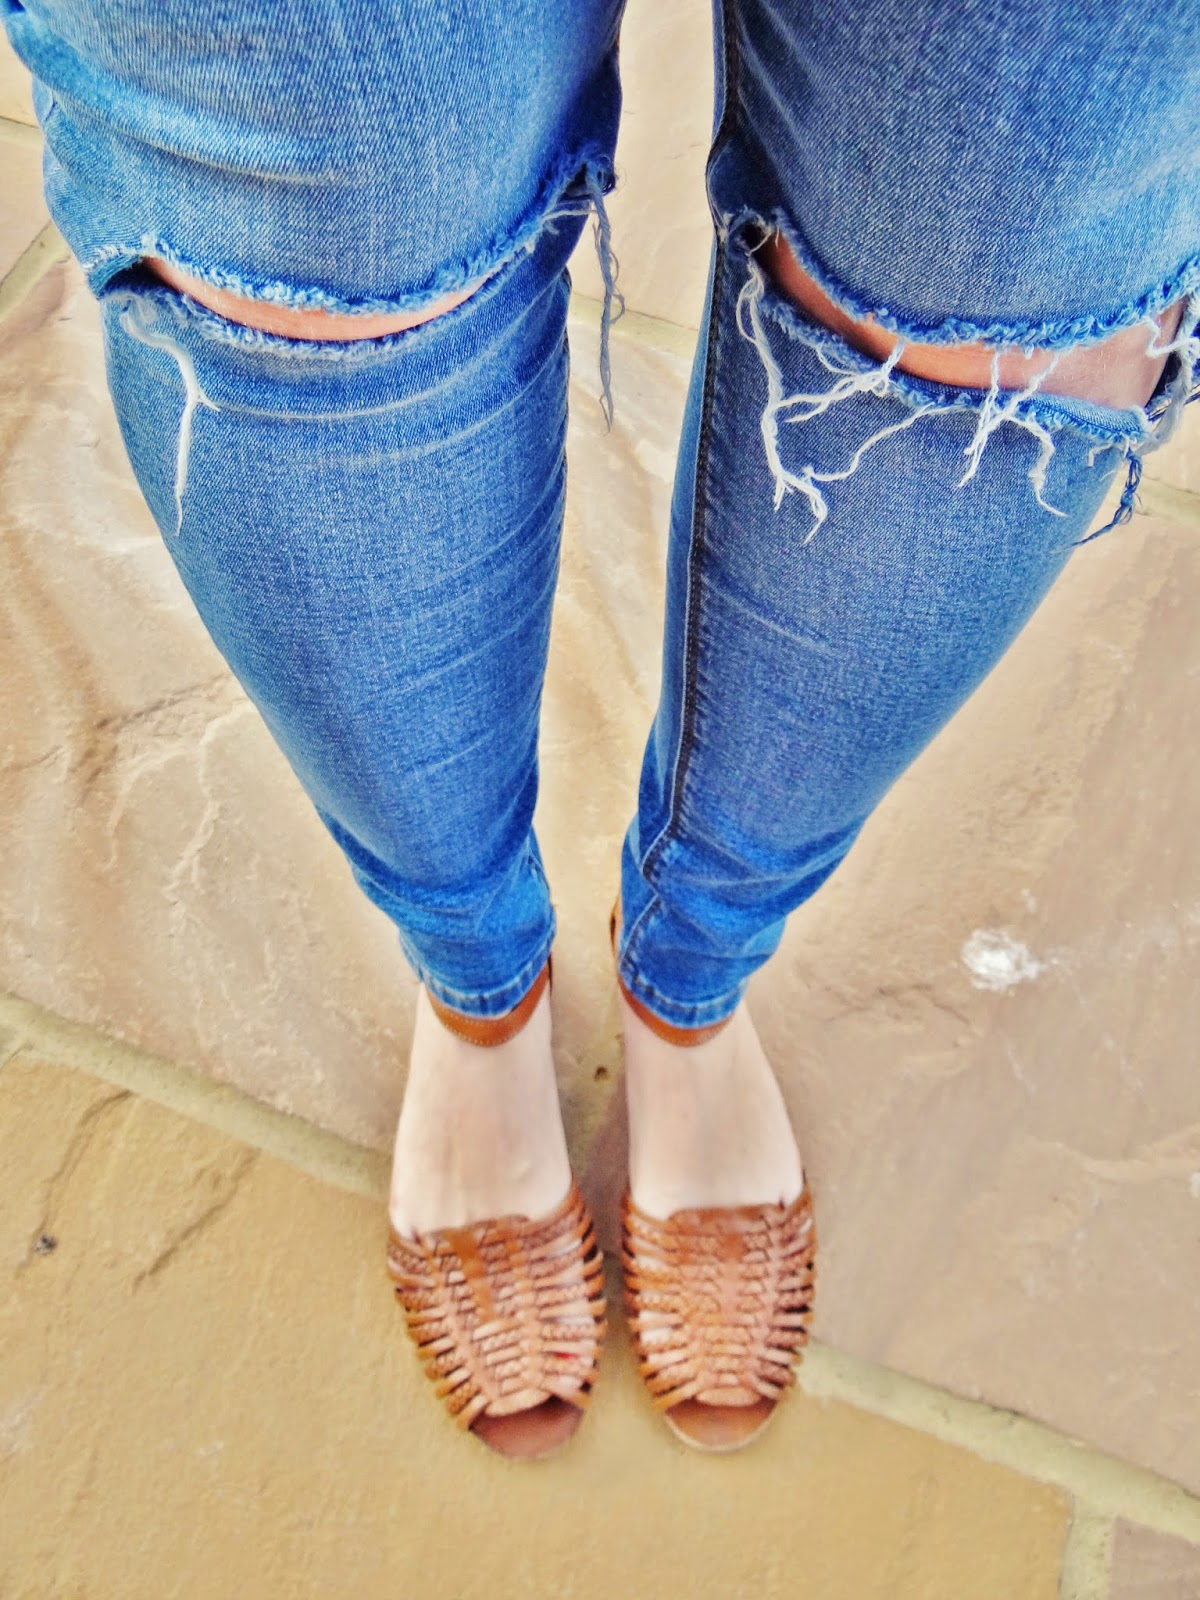 ASOS jeans with busted knee blue denim